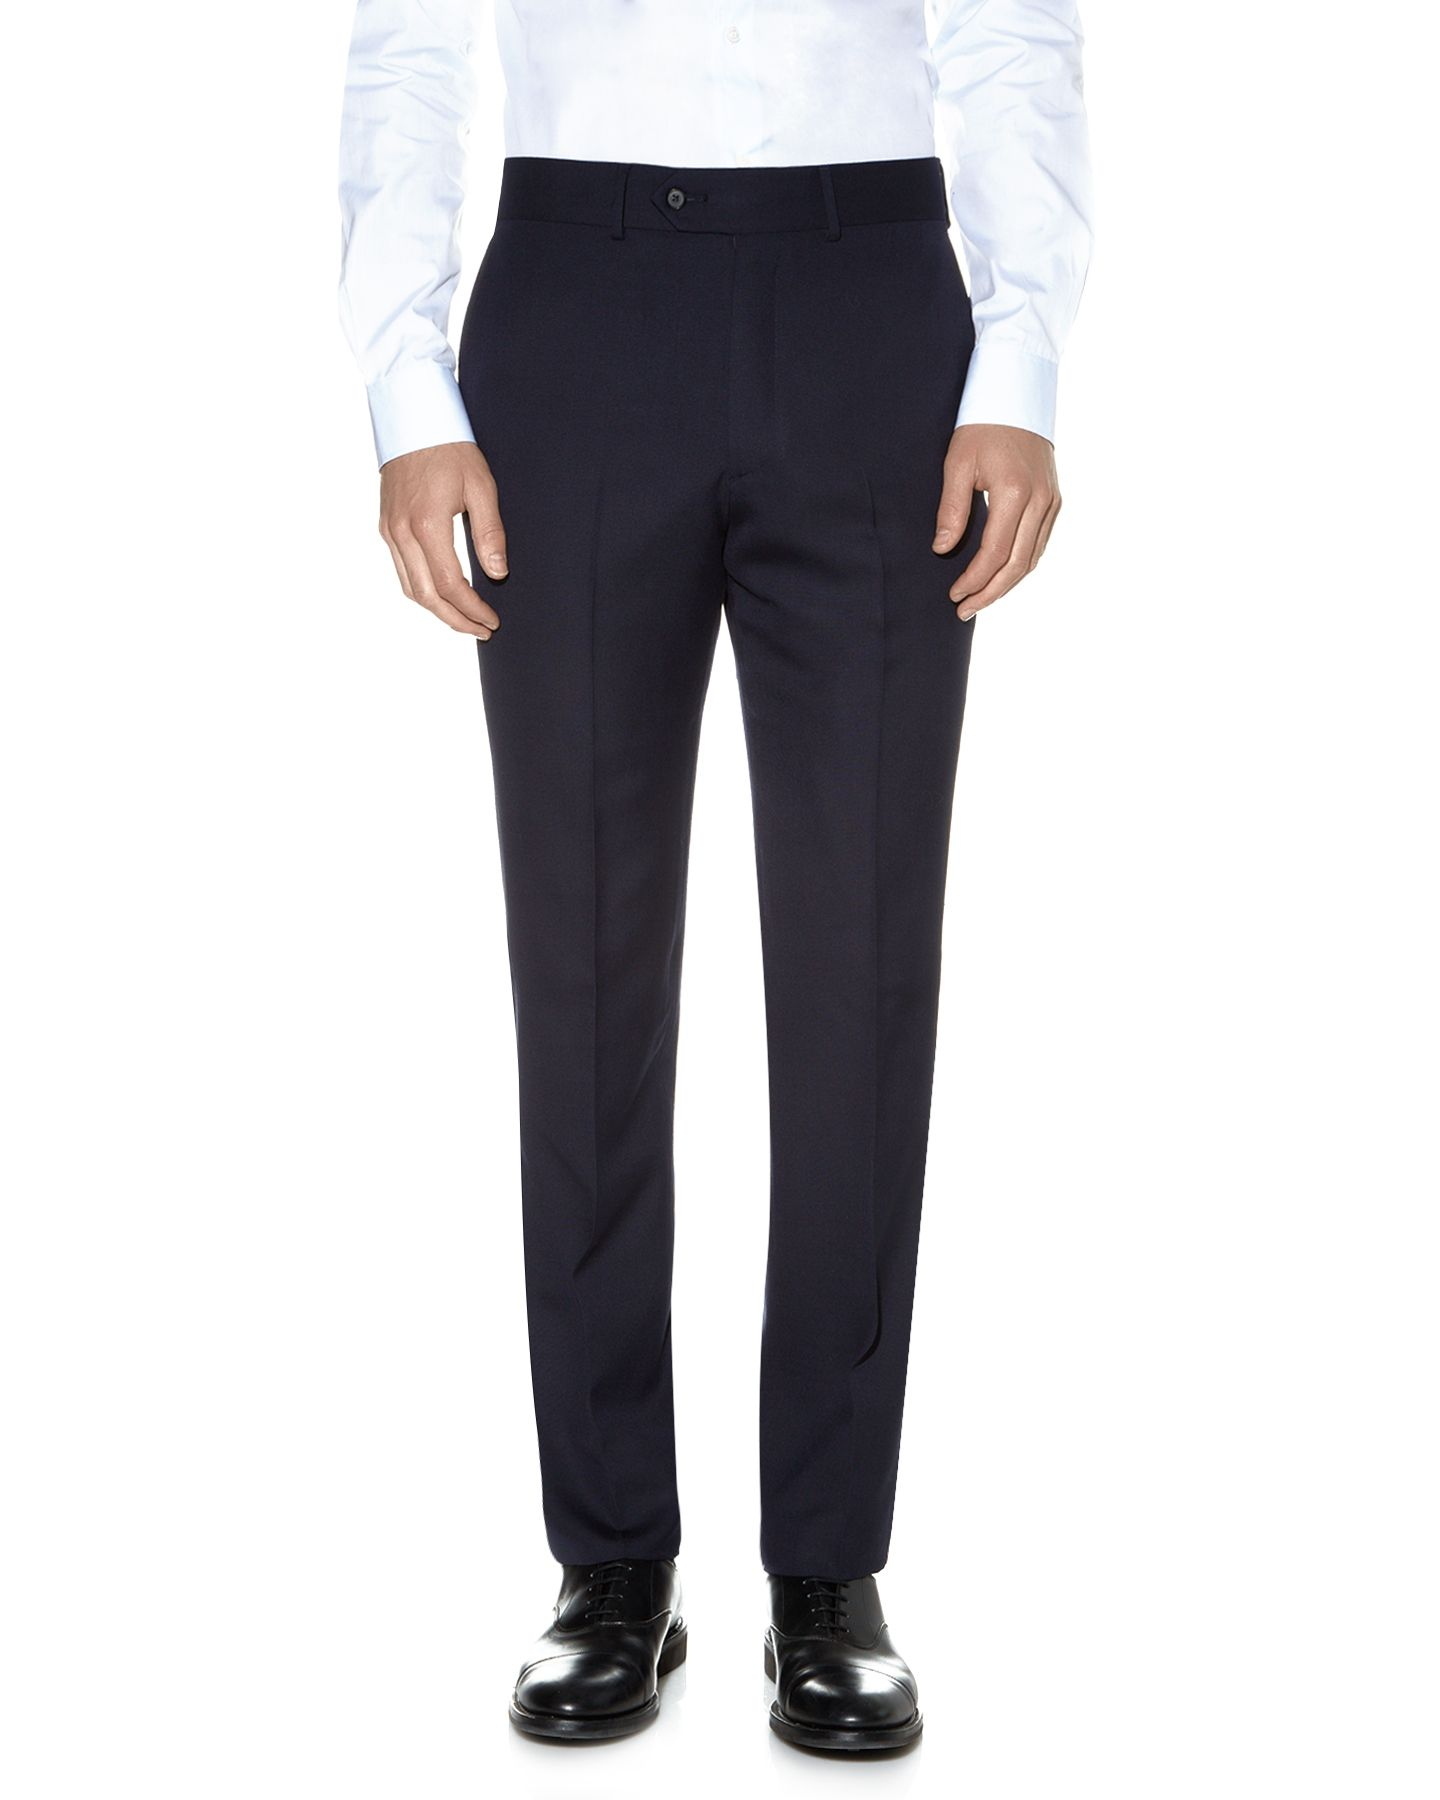 Hopsack clothier finish trouser